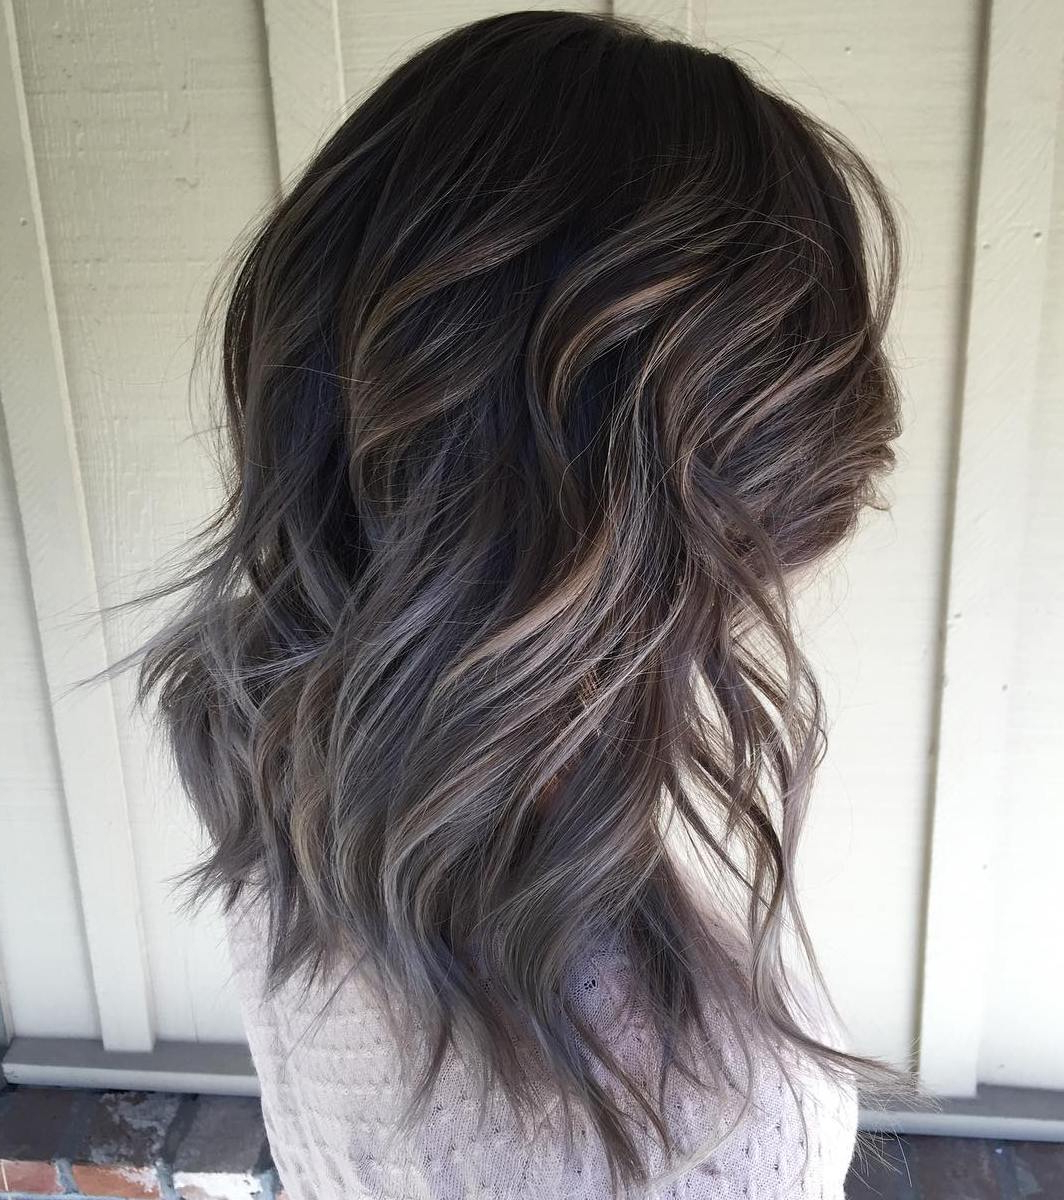 45 Ideas Of Gray And Silver Highlights On Brown Hair For Gray Hairstyles With High Layers (View 8 of 20)